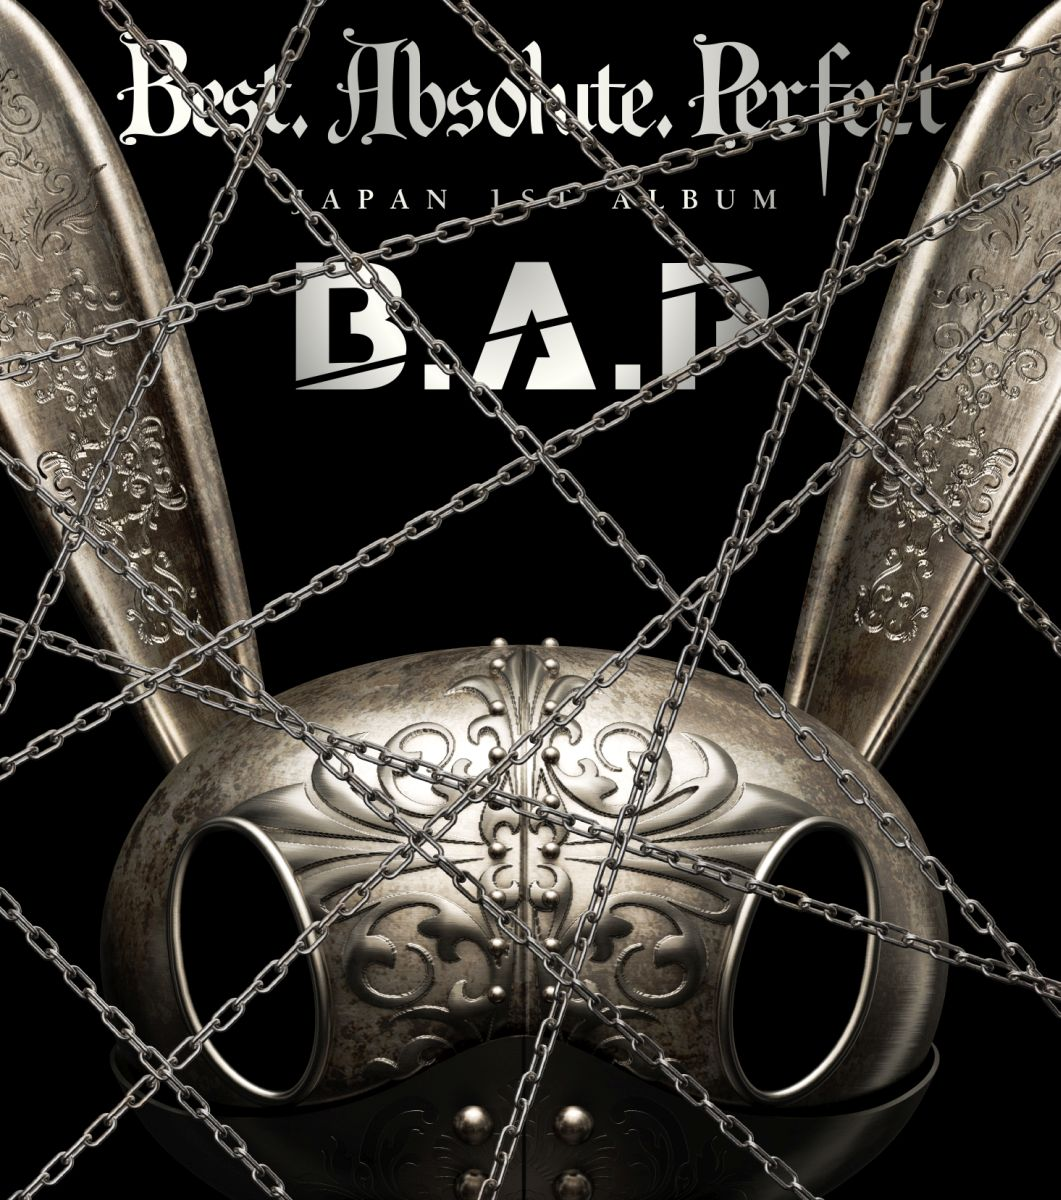 Best. Absolute. Perfect (Type-A CD+DVD) 【特典なし】 [ B.A.P ]